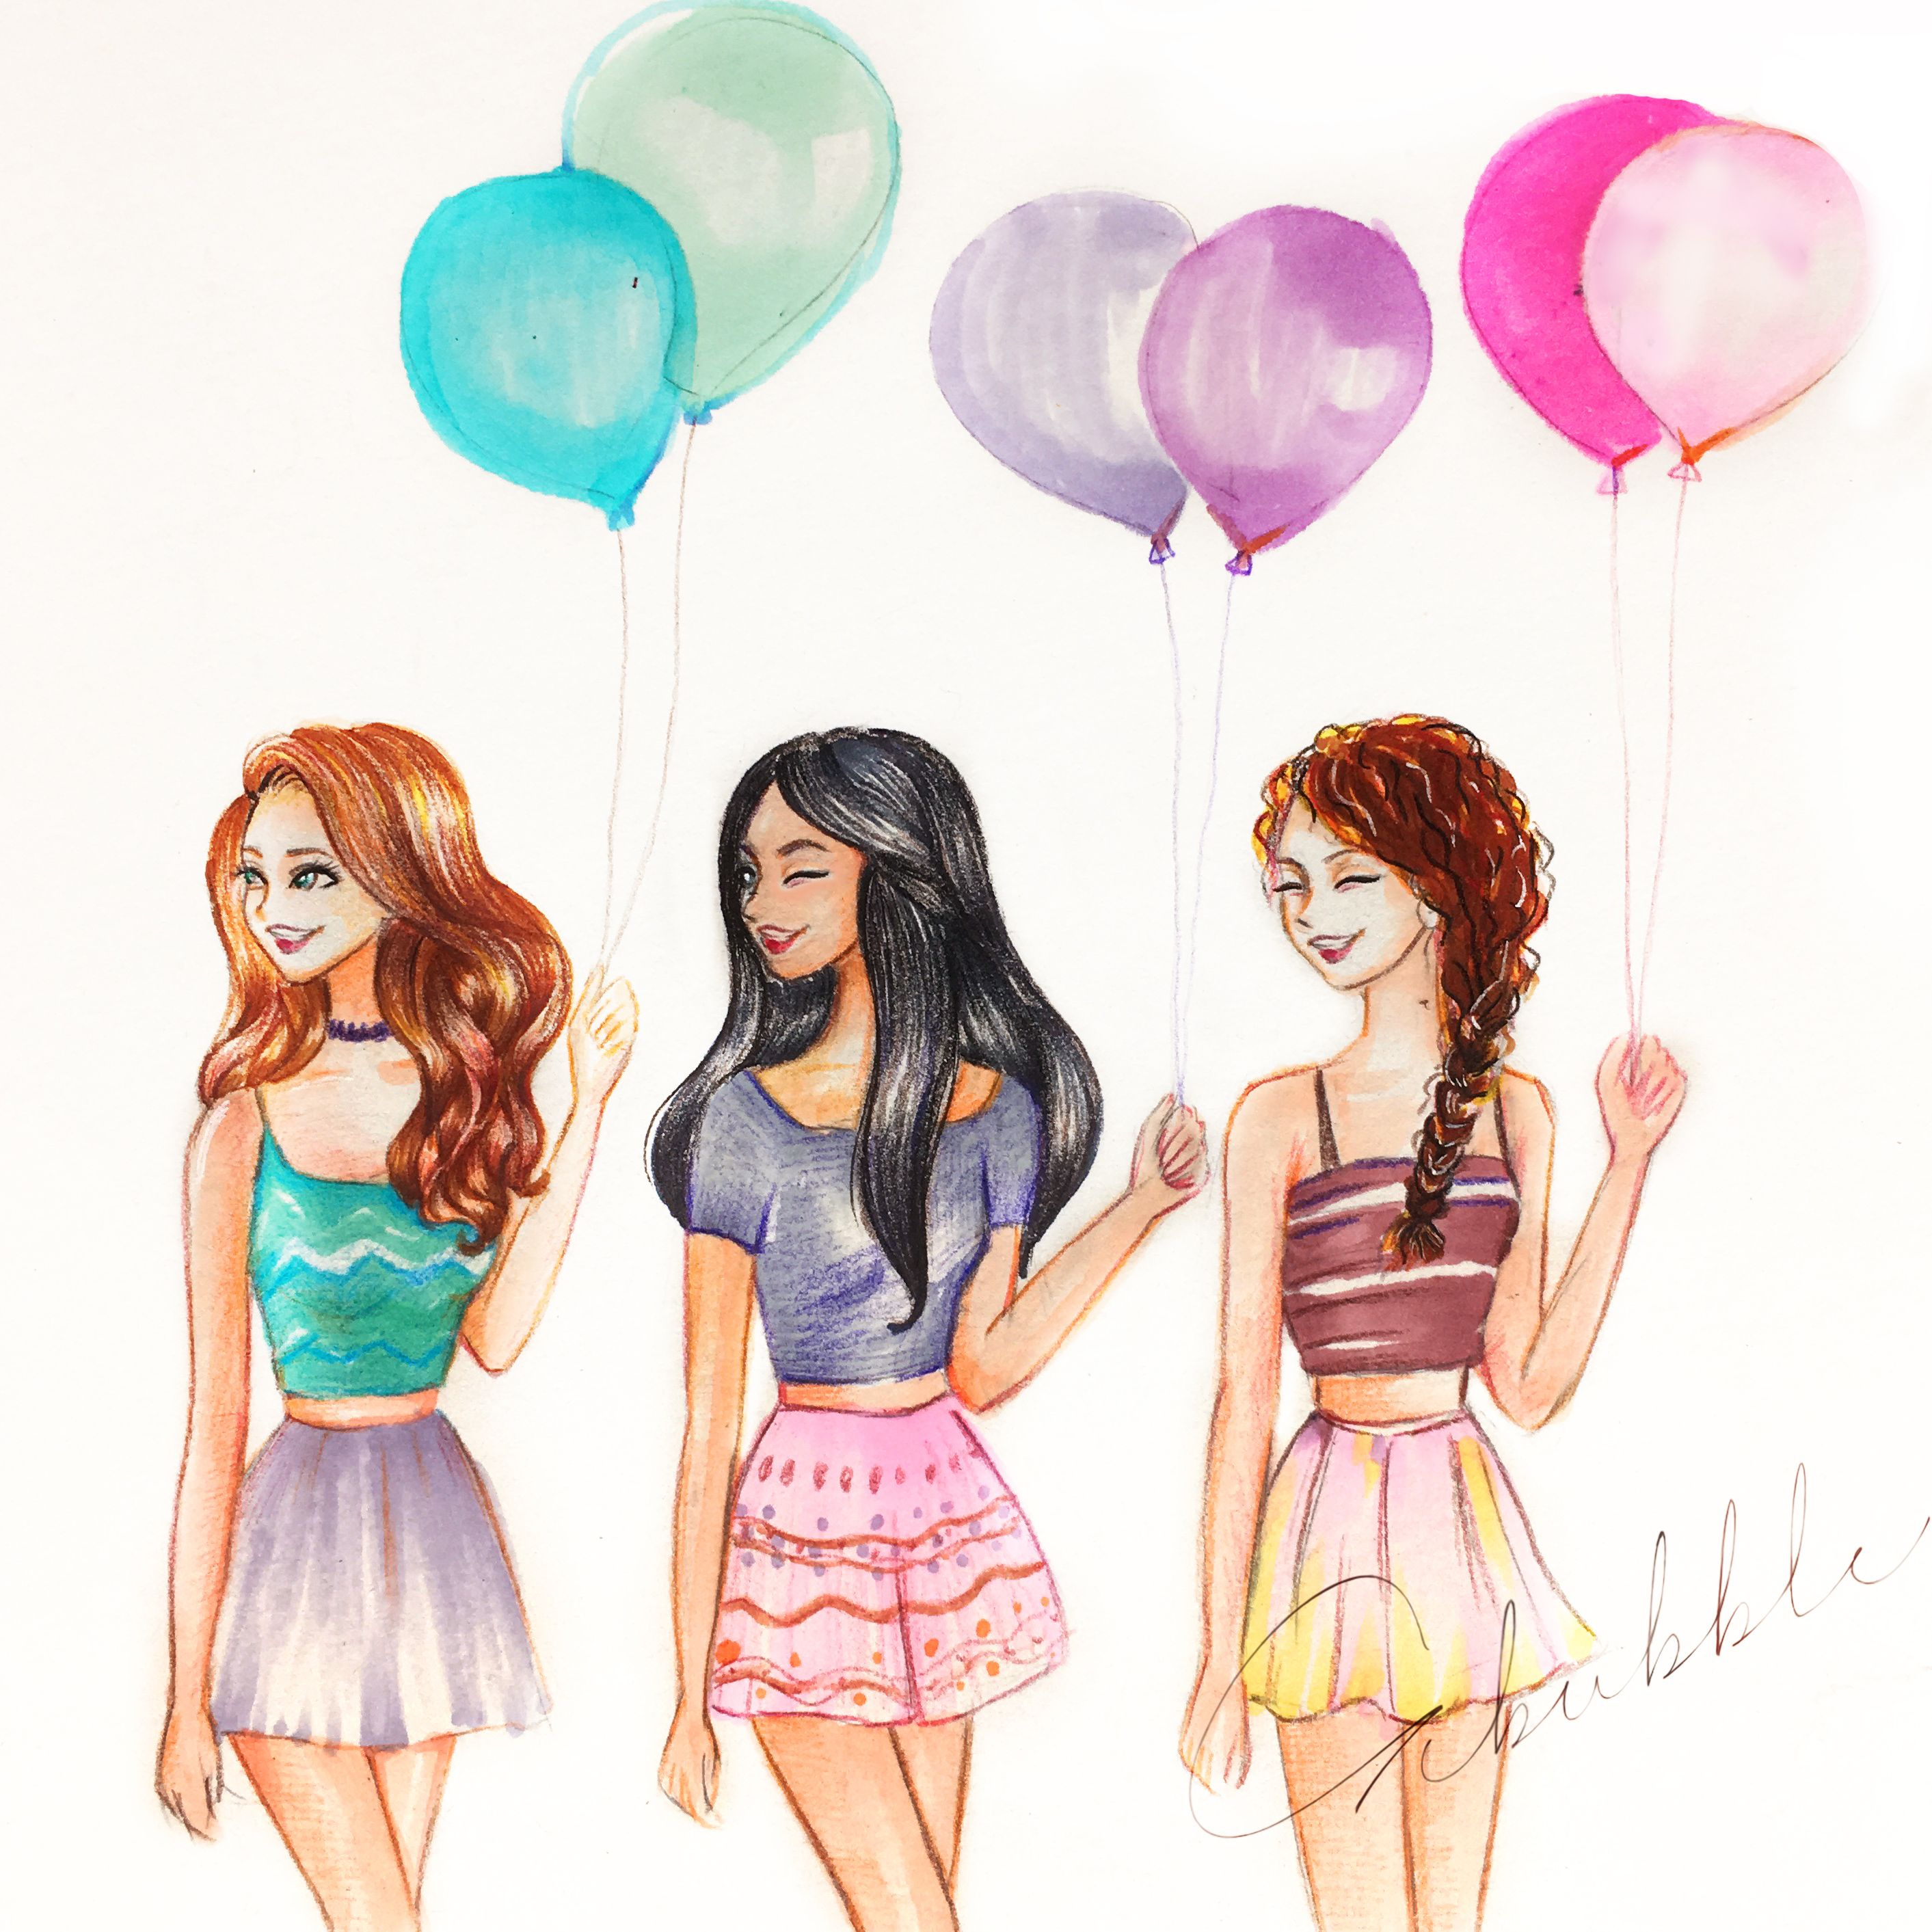 Balloon pretty drawings art drawings girly drawings tumblr drawings beautiful drawings